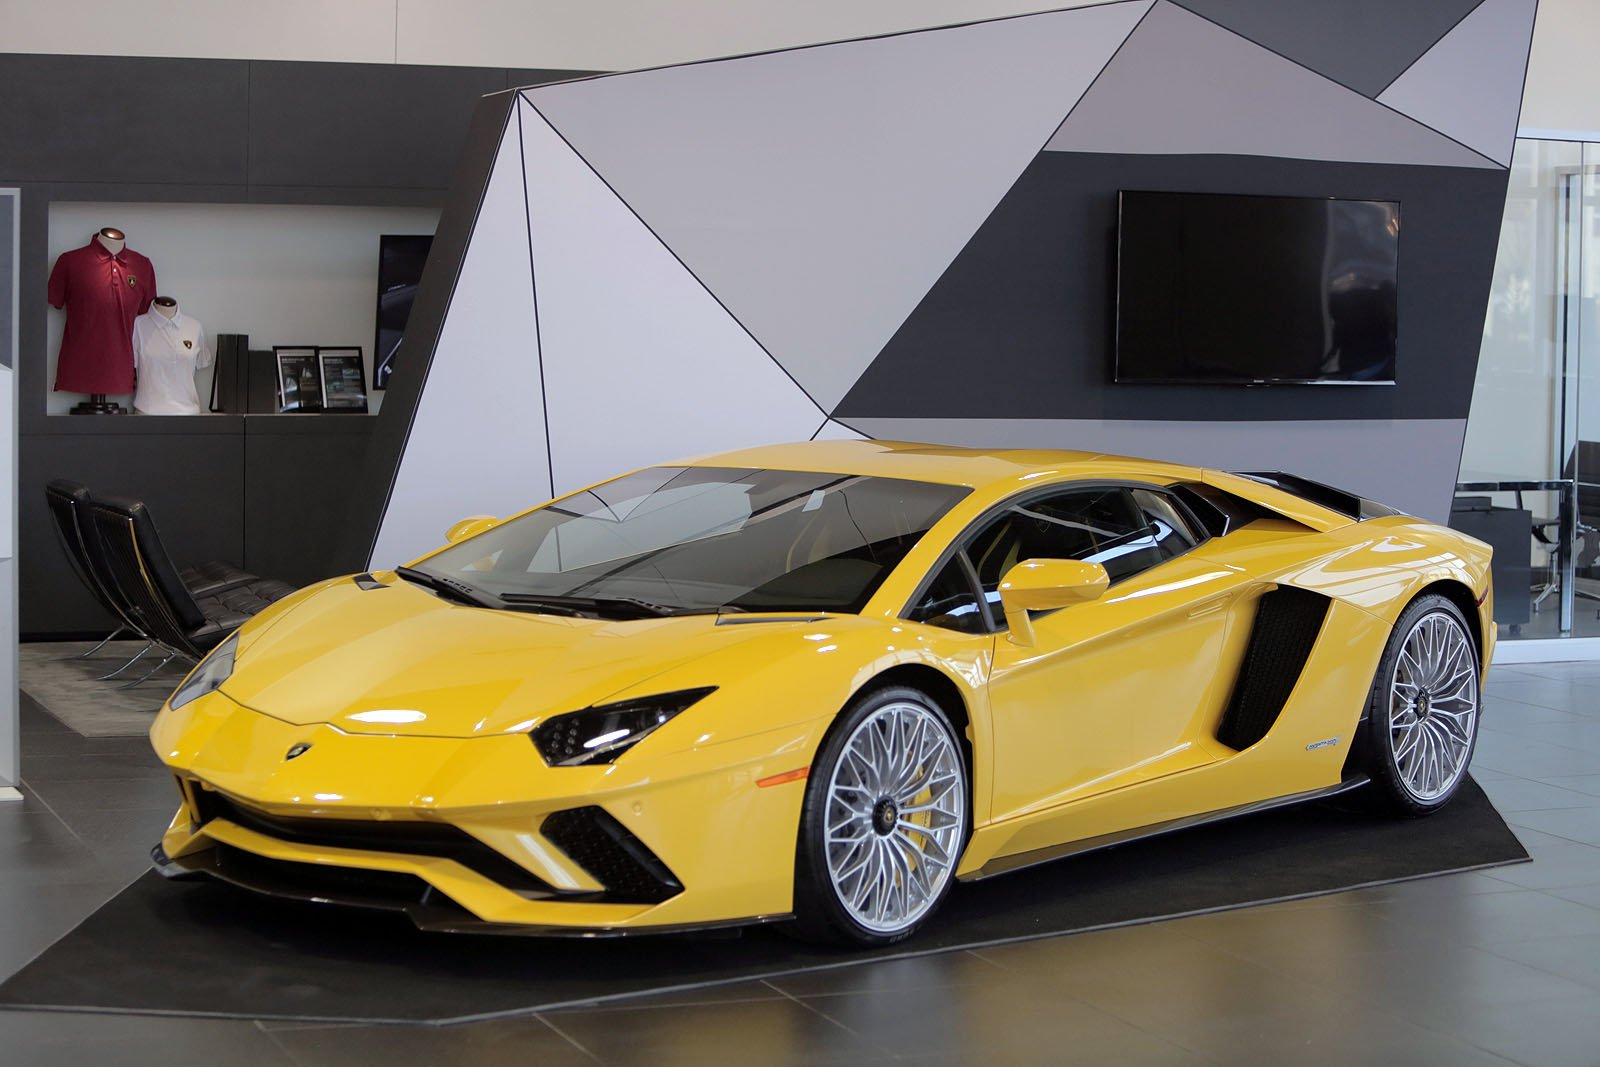 Lamborghini Aventador S Making the Public Rounds